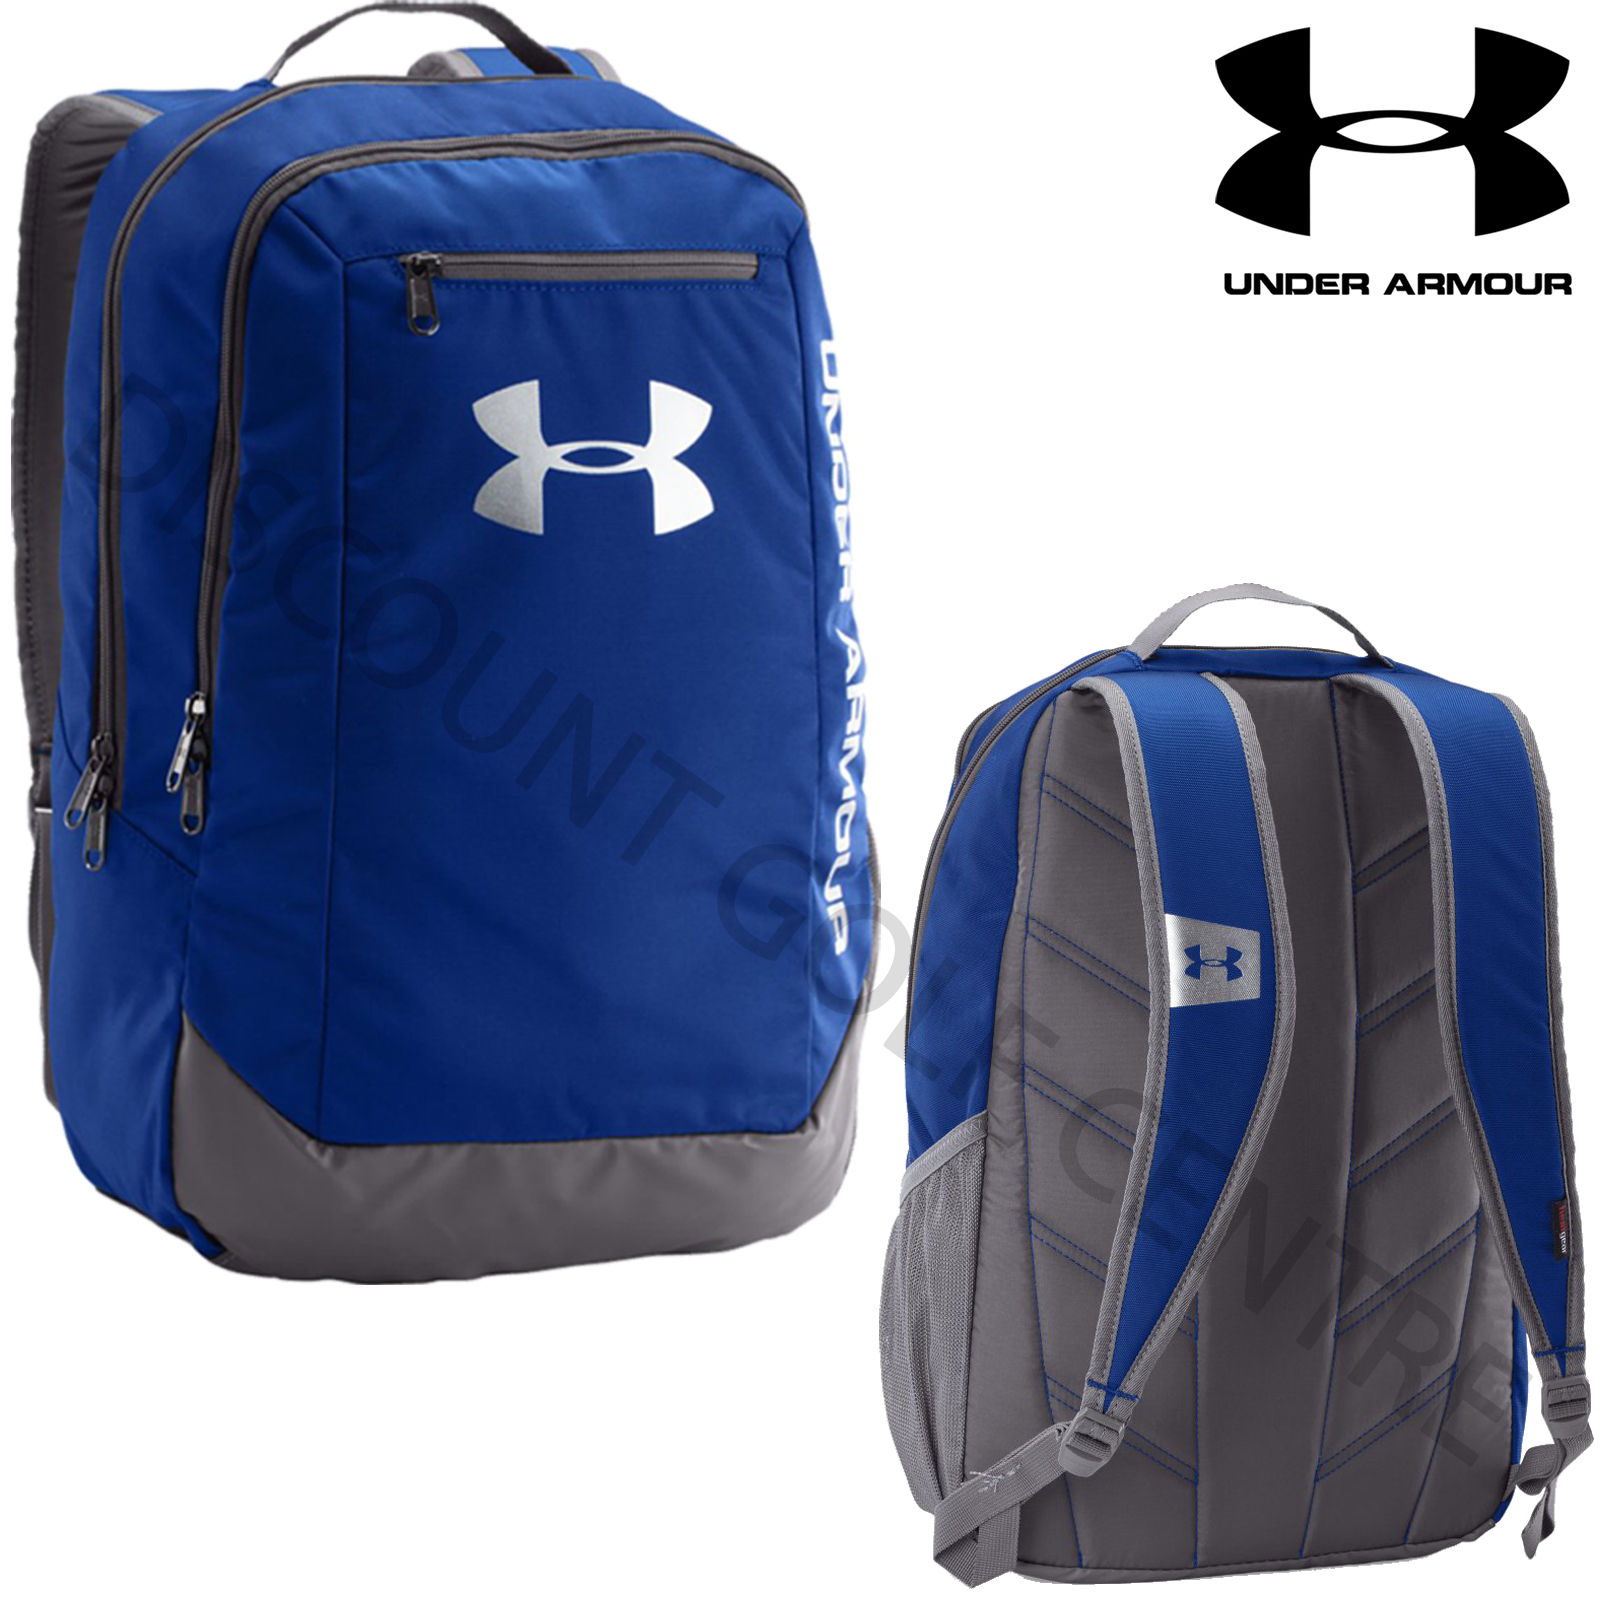 under armour 2017 ua hustle ldwr sac dos sac dos gym sac d 39 cole 1273274 ebay. Black Bedroom Furniture Sets. Home Design Ideas